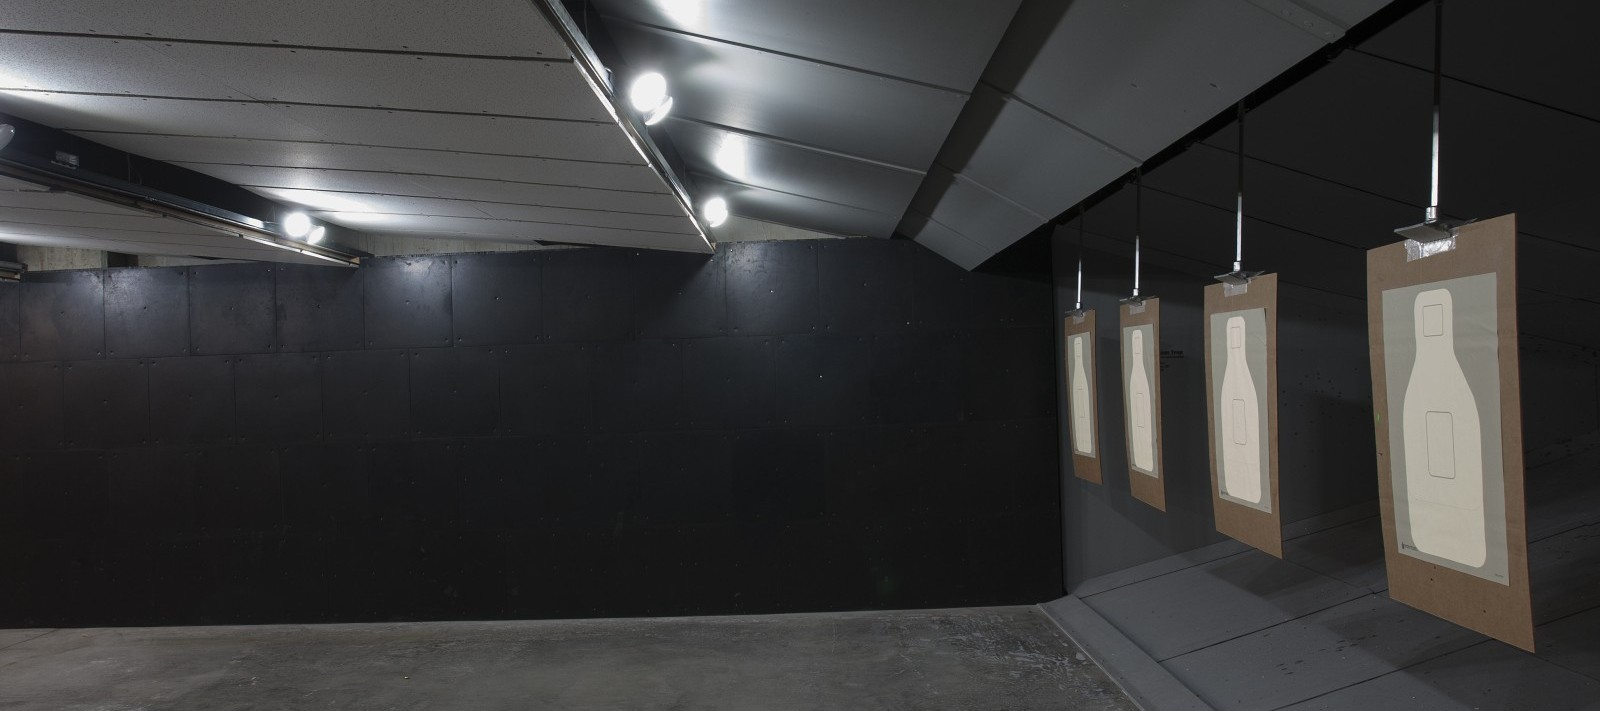 Side view of shooting range